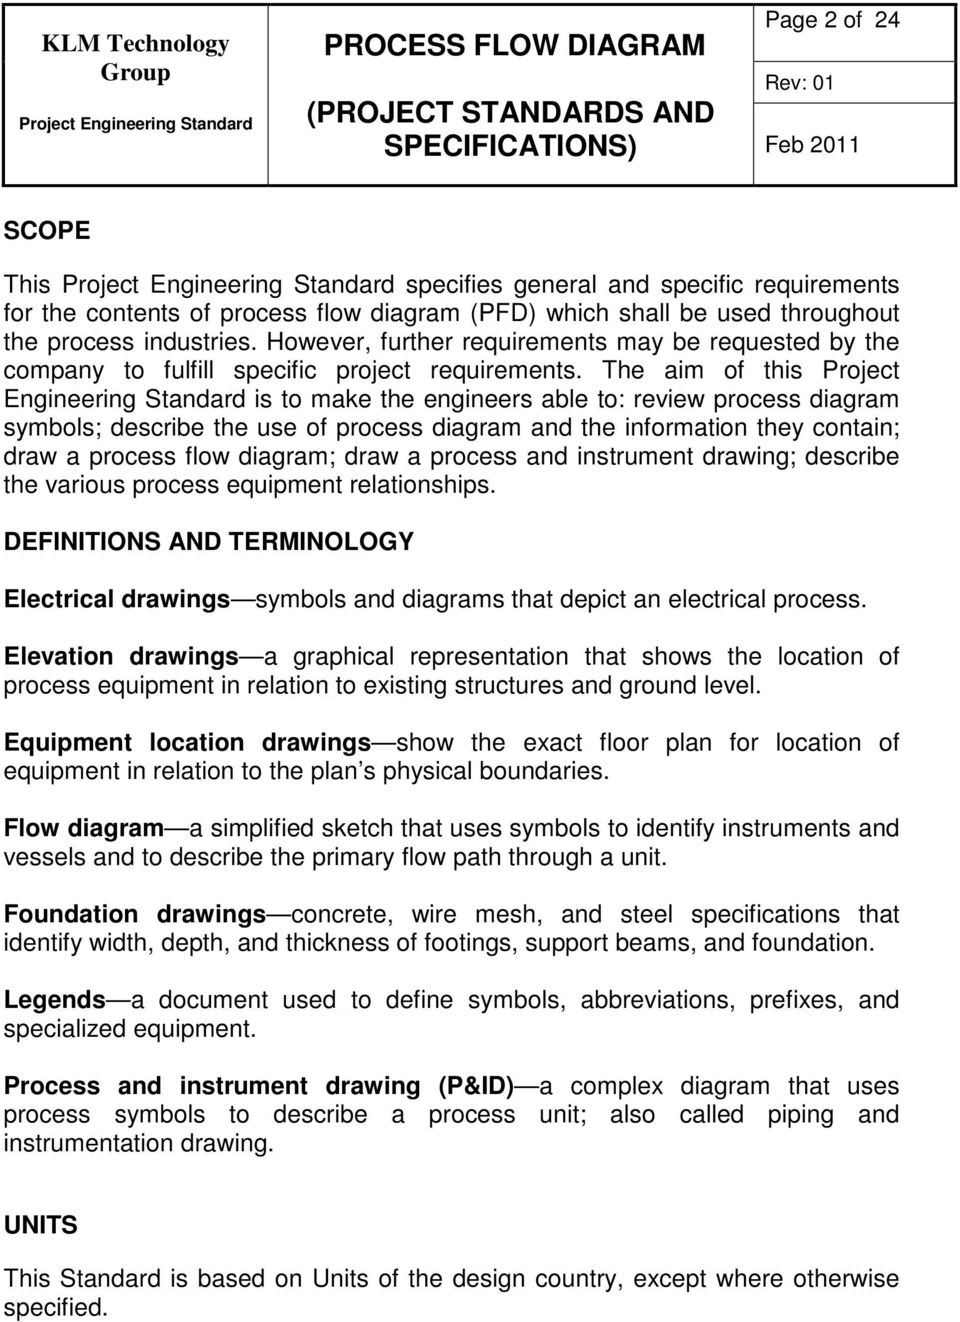 Table Of Content Pdf Engineering Diagram Symbols The Aim This Project Standard Is To Make Engineers Able Review